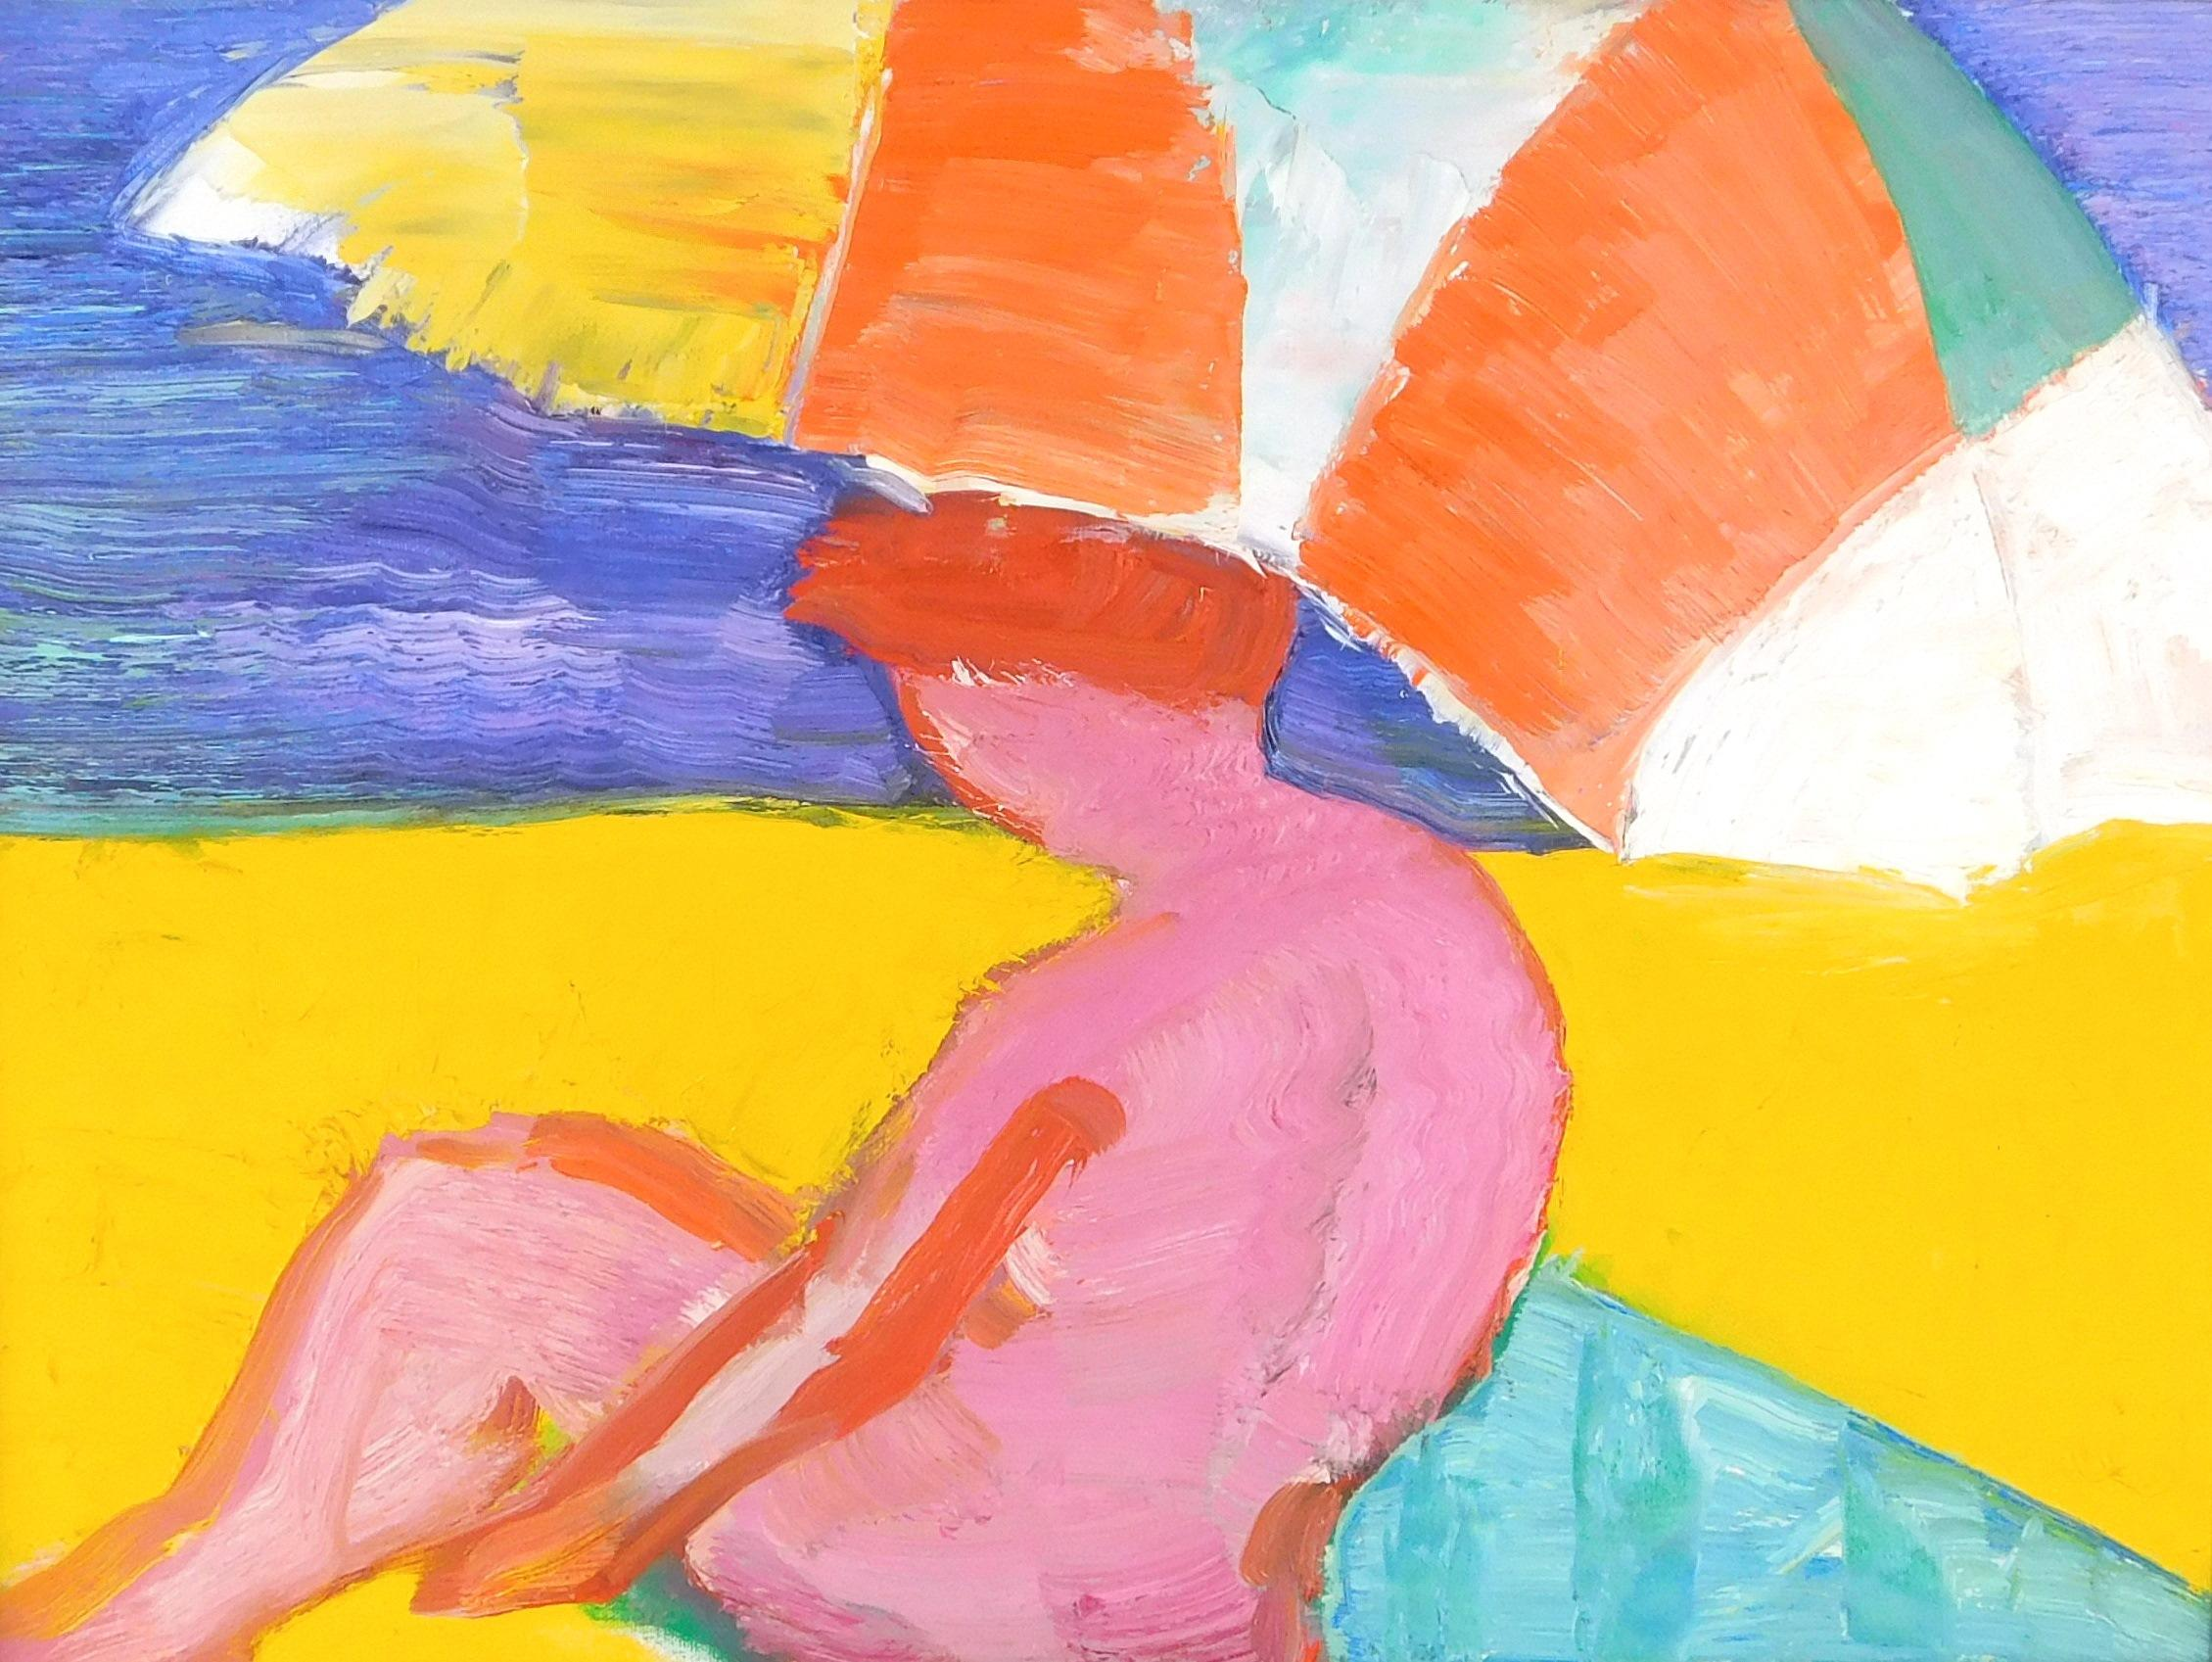 John Grillo (American, 1917-2014), oil on canvas, pink-toned figure rests on teal towel on beach under a multi-colored umbrella, vib...